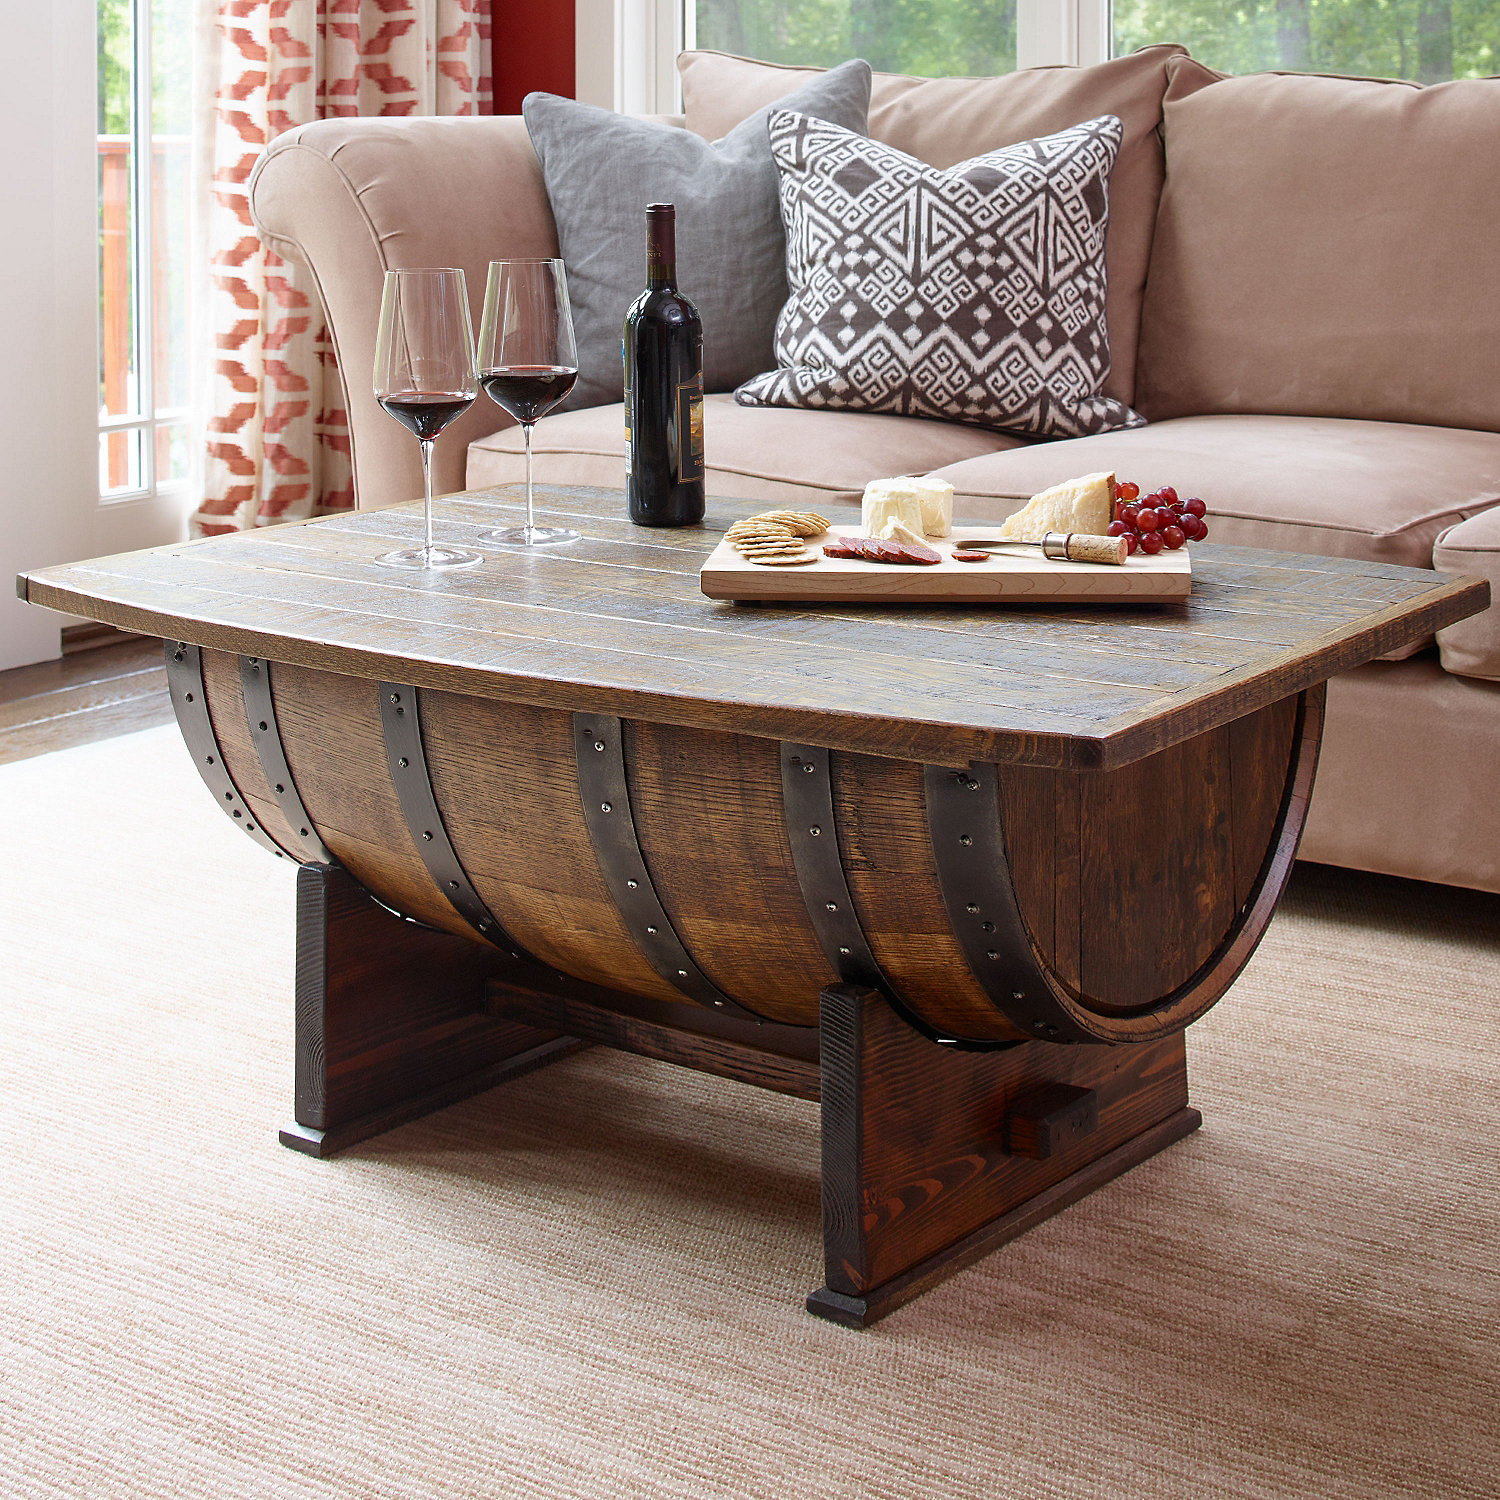 furniture wooden barrel coffee table for rustic living room wine side kitchen whiskey cooler whisky lighting bar outdoor with marble top tea pottery barn square magnussen